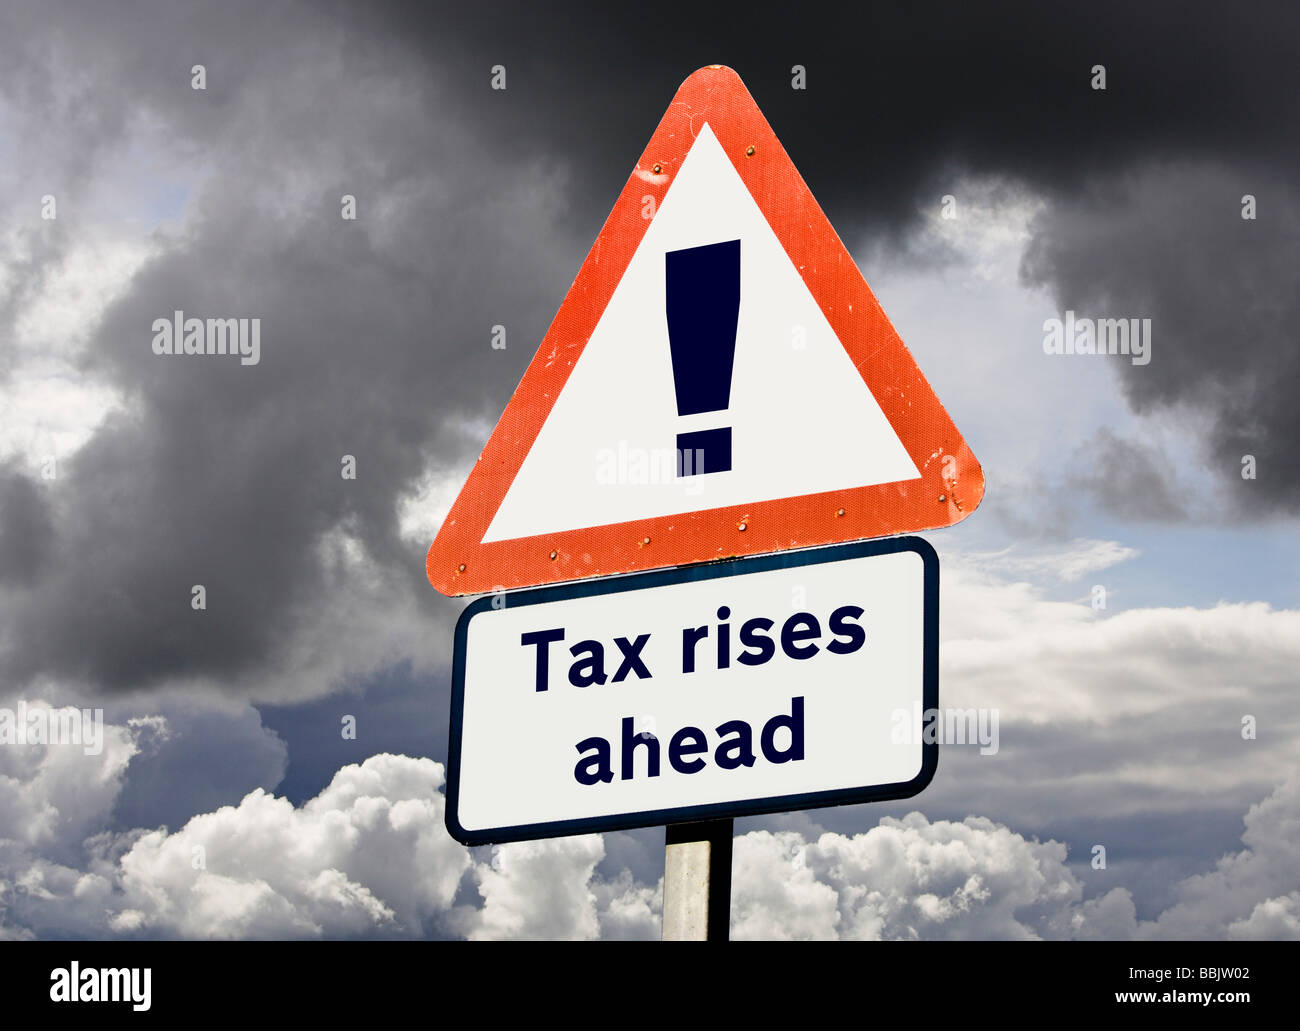 Concept sign for British UK Tax Rises Ahead - future taxation prediction / budget concepts - Stock Image